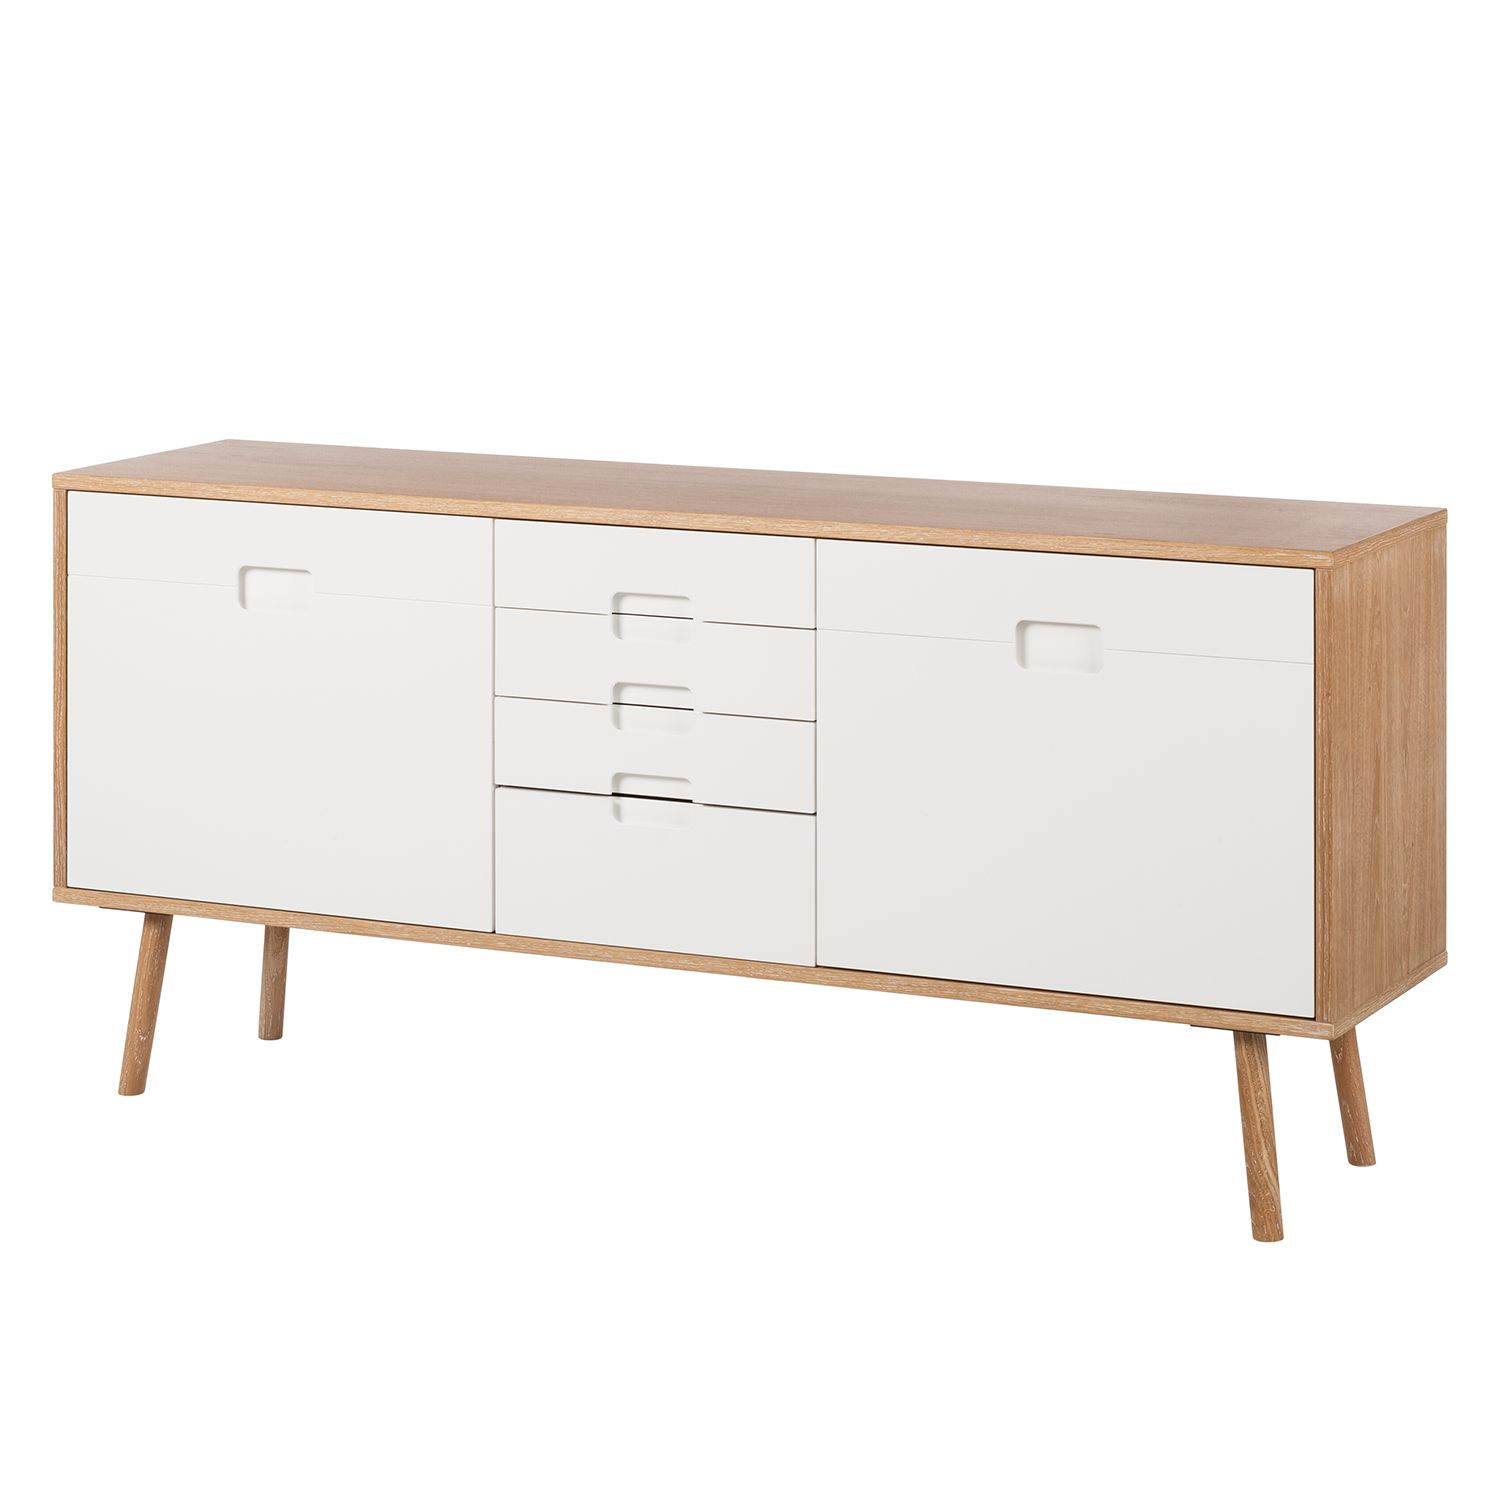 Sideboard Verwood I